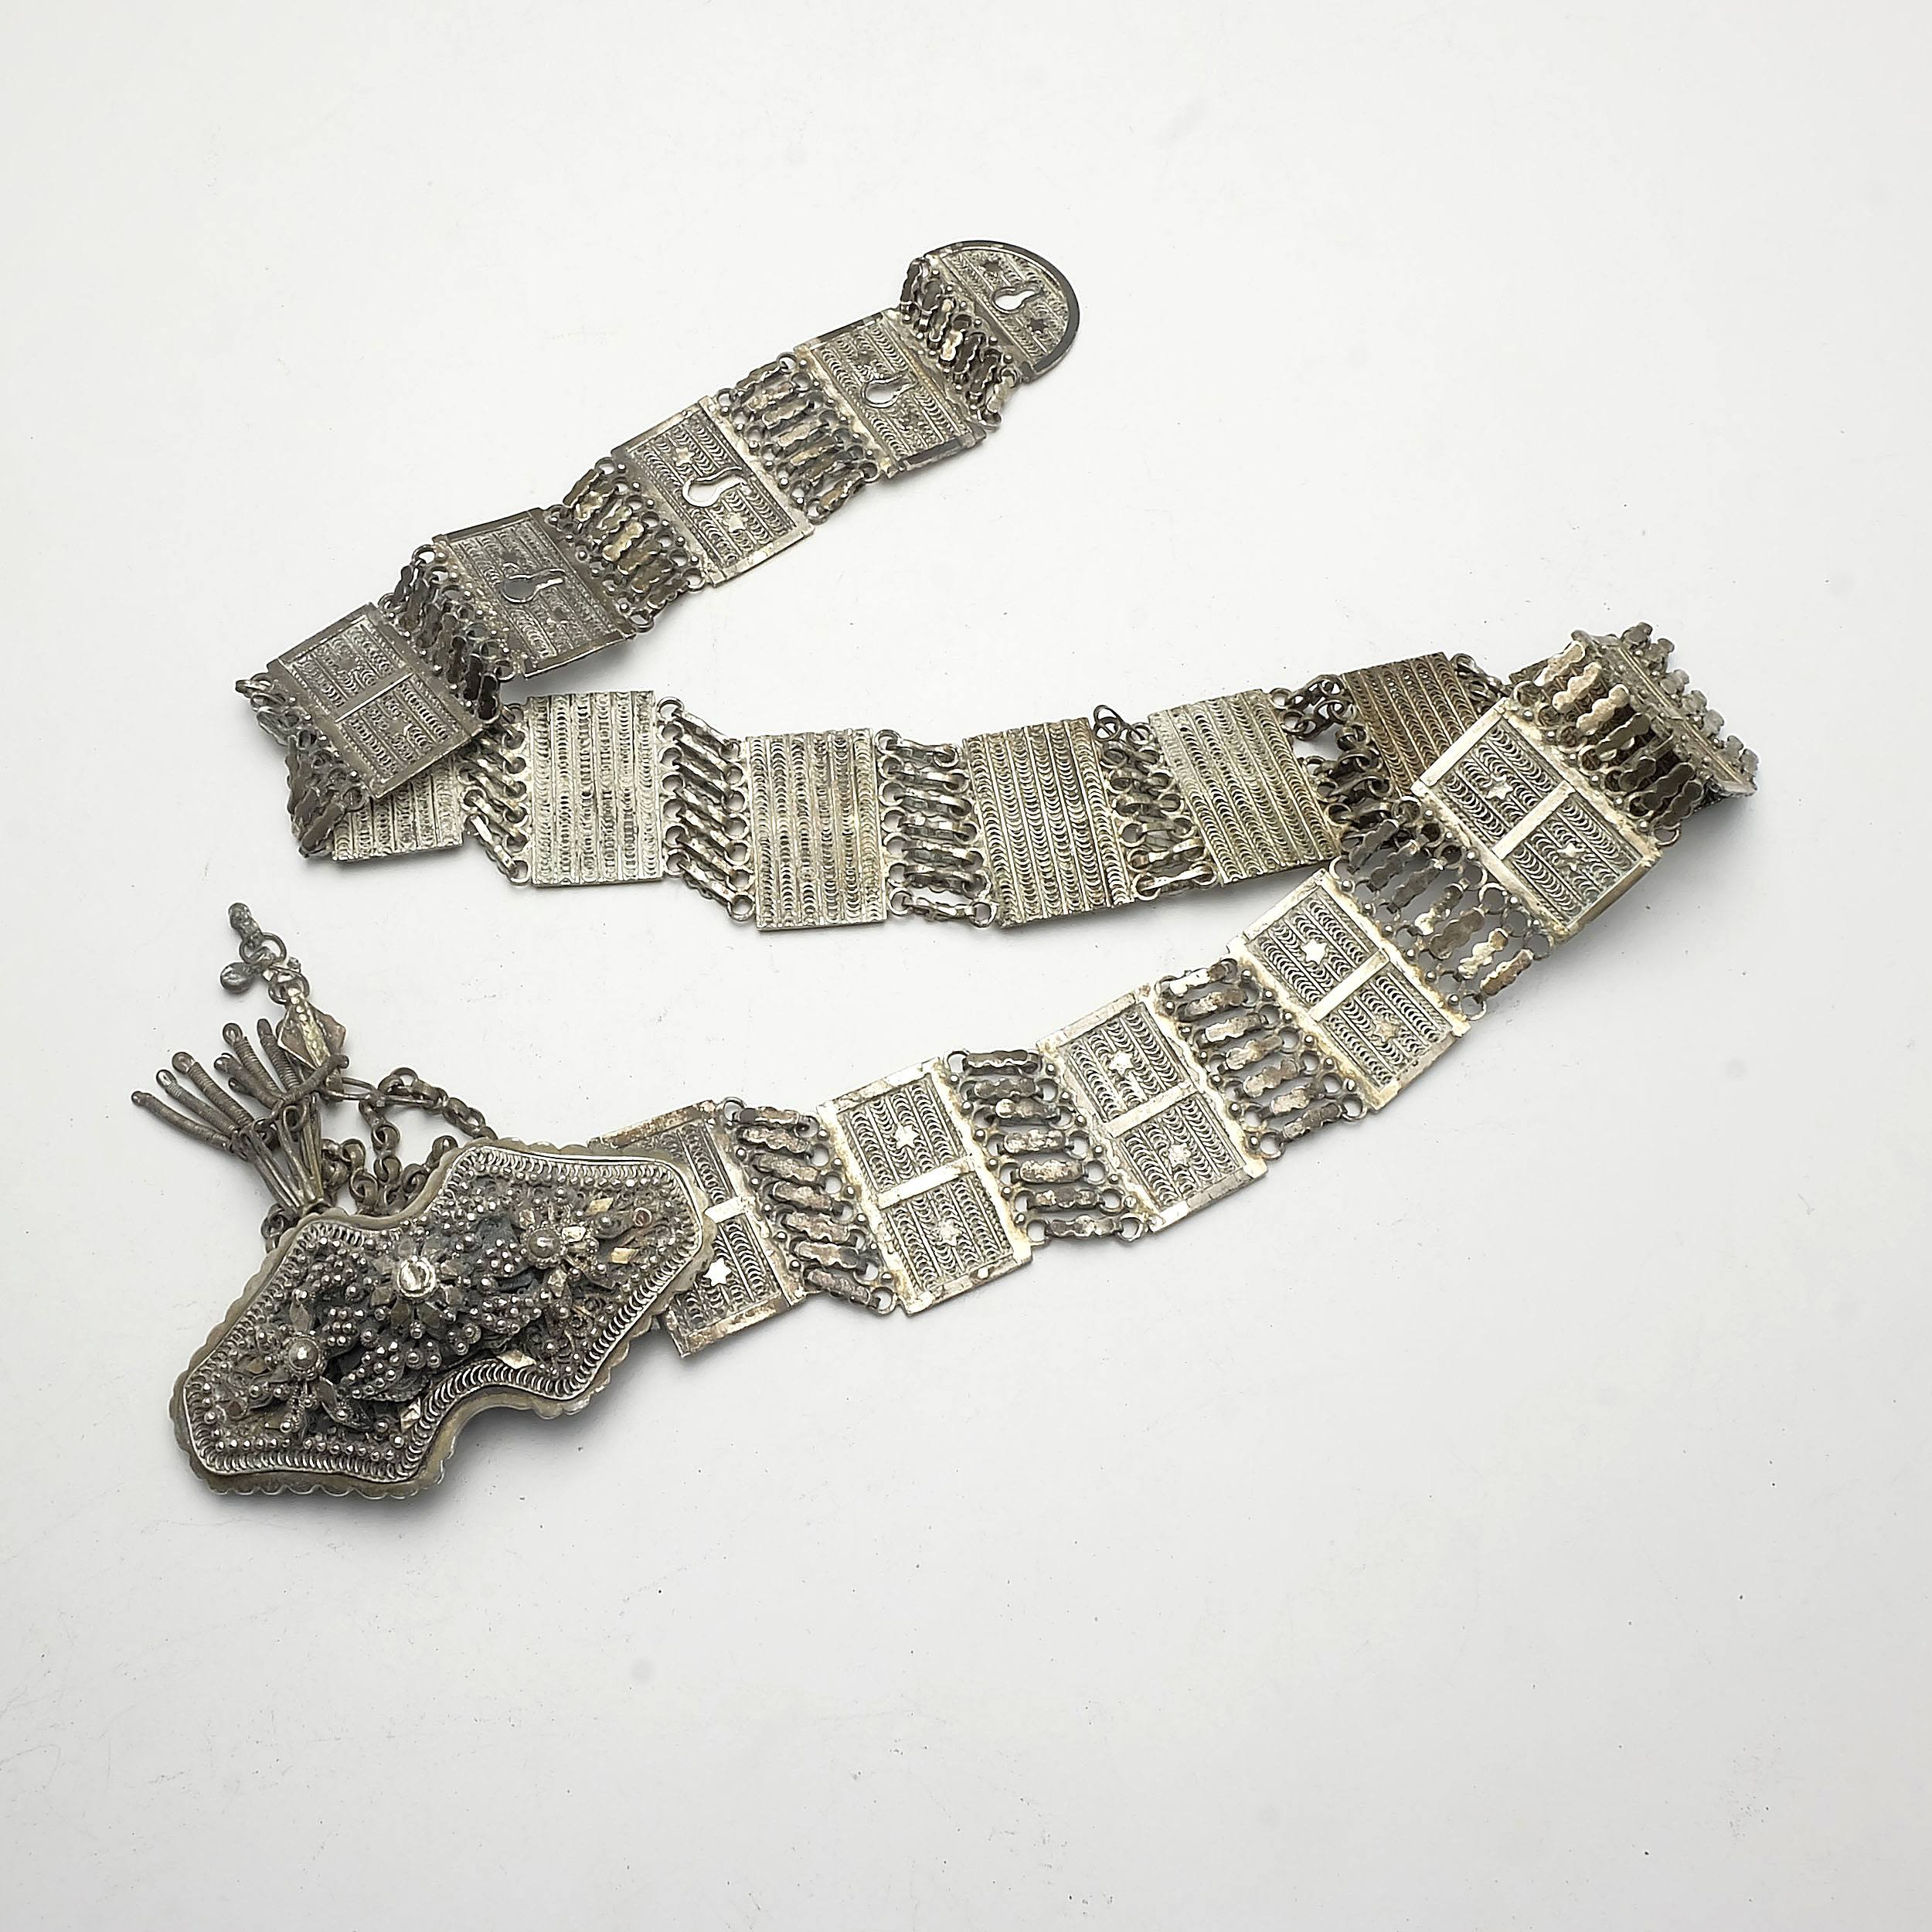 'Persian Silver Filigree Belt with Impressive Raised Silver Buckle, 337g'